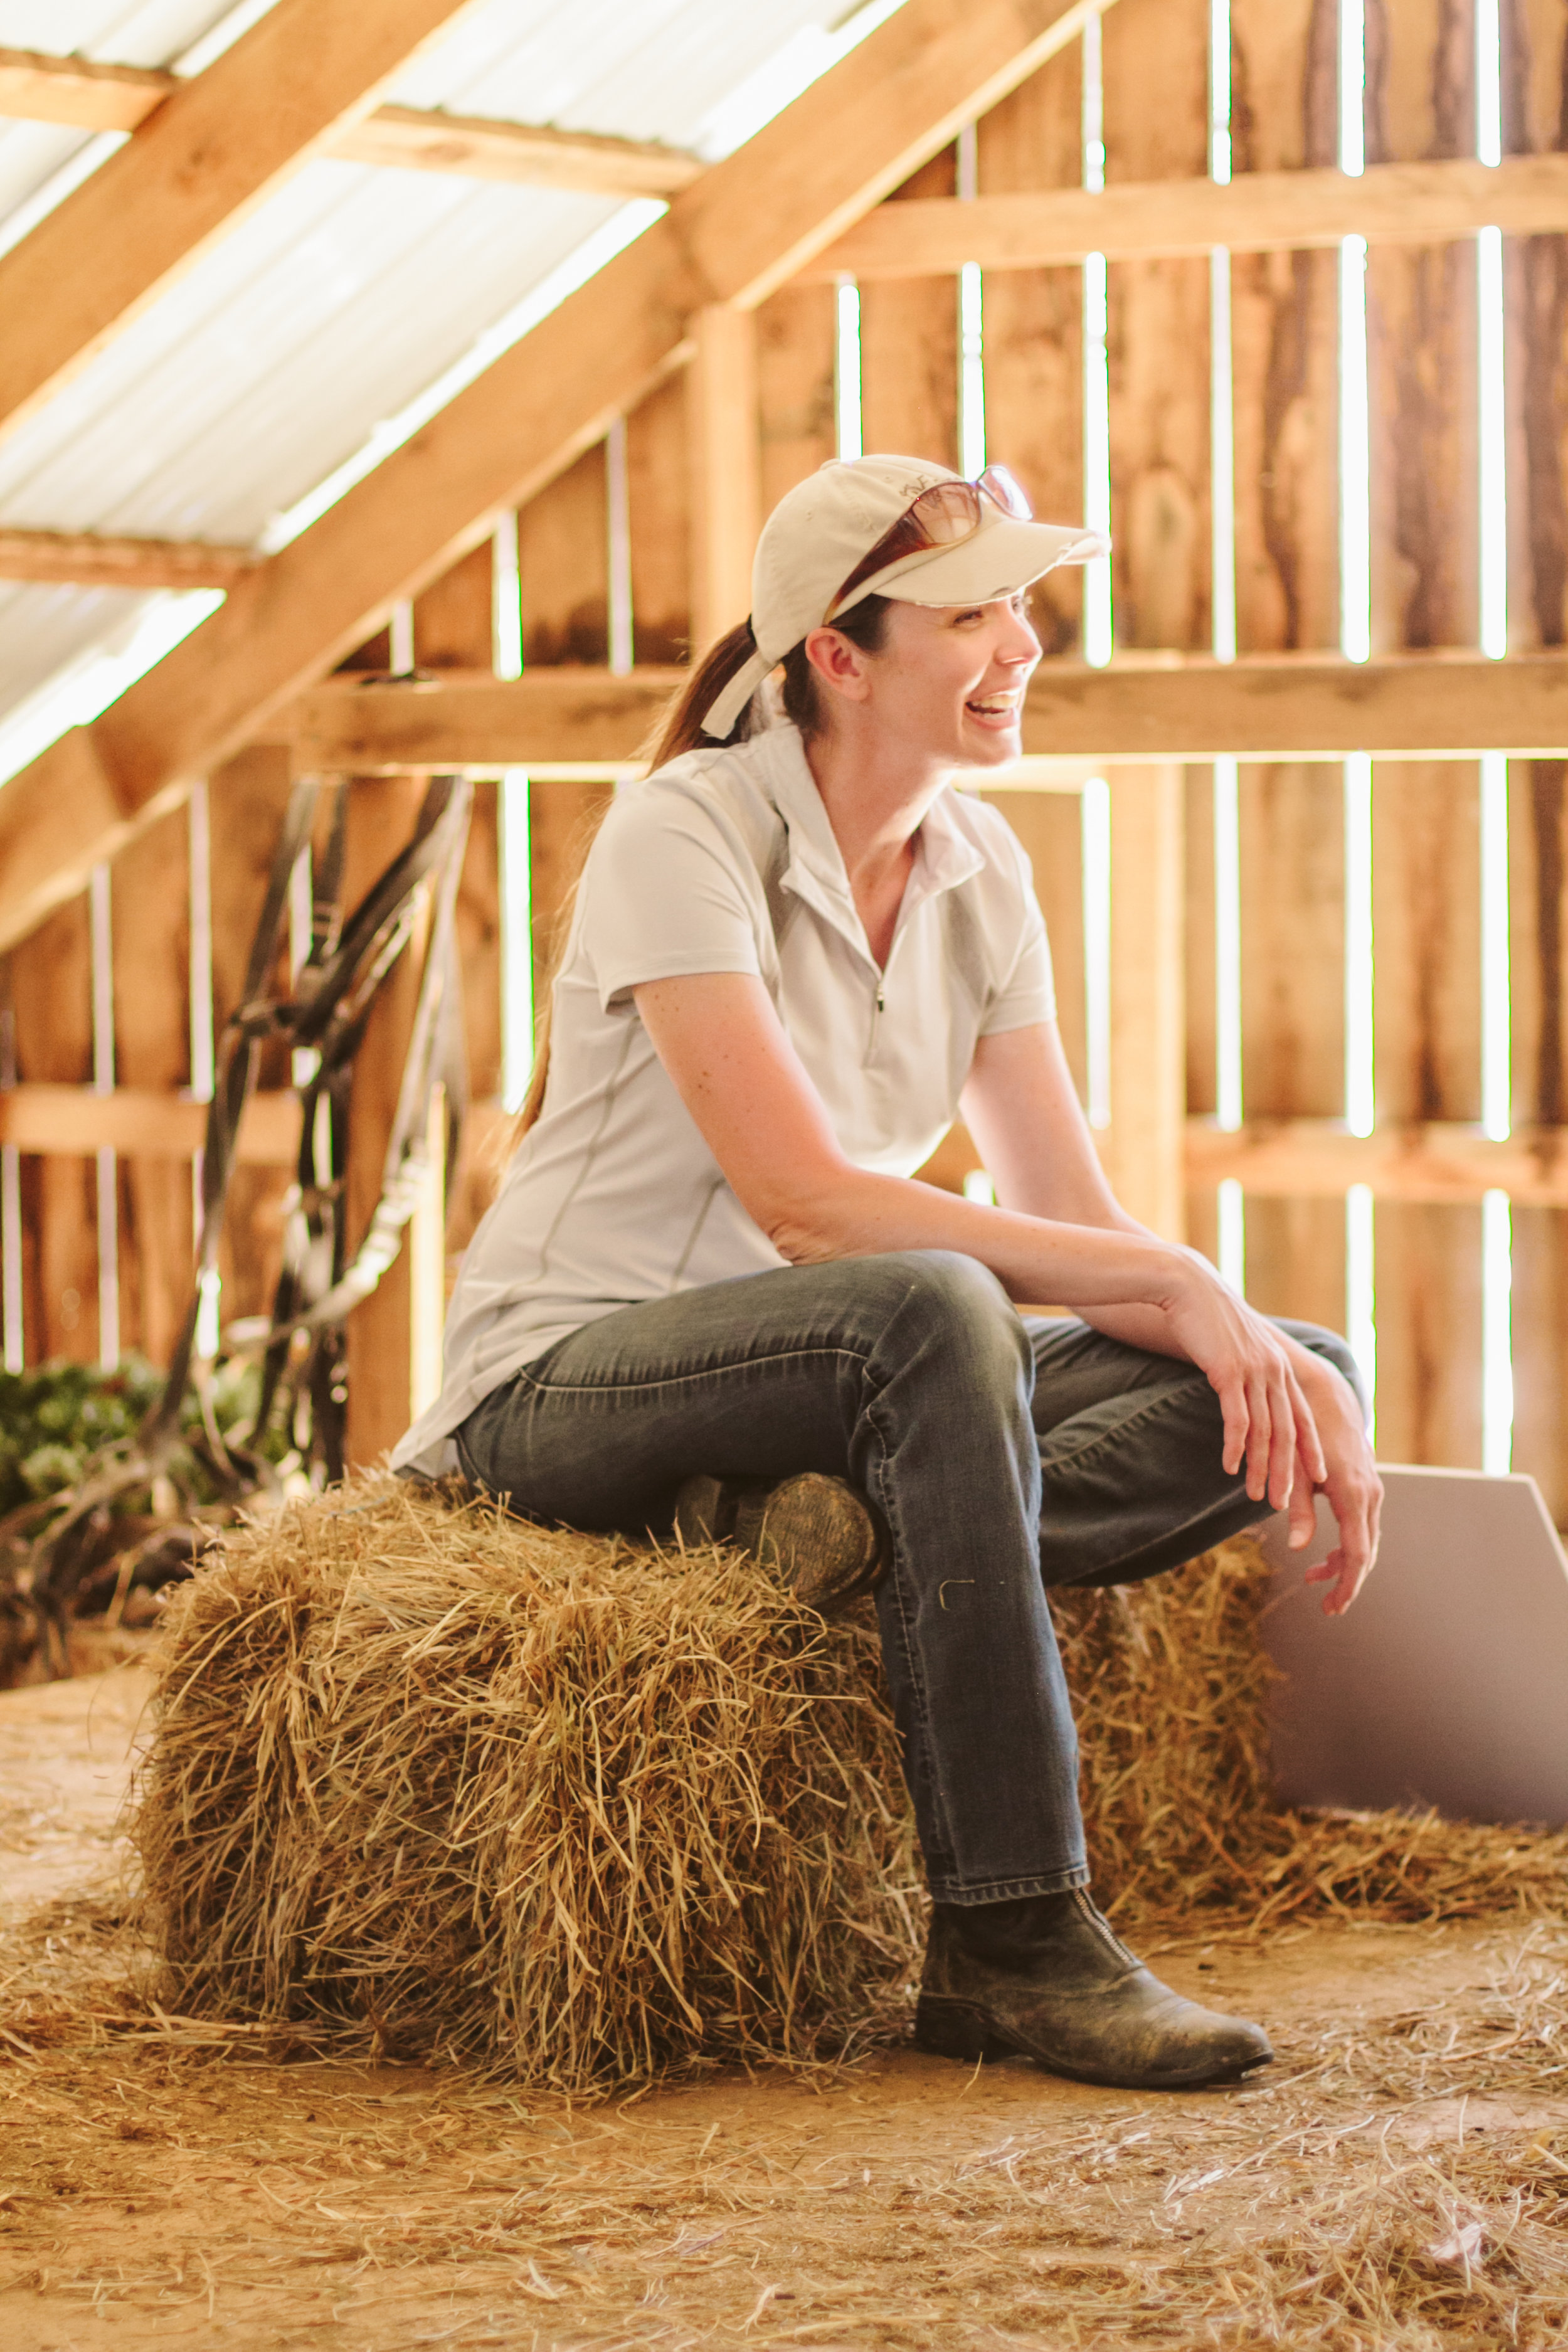 Because sometimes hay bales are way more comfortable than office chairs... -